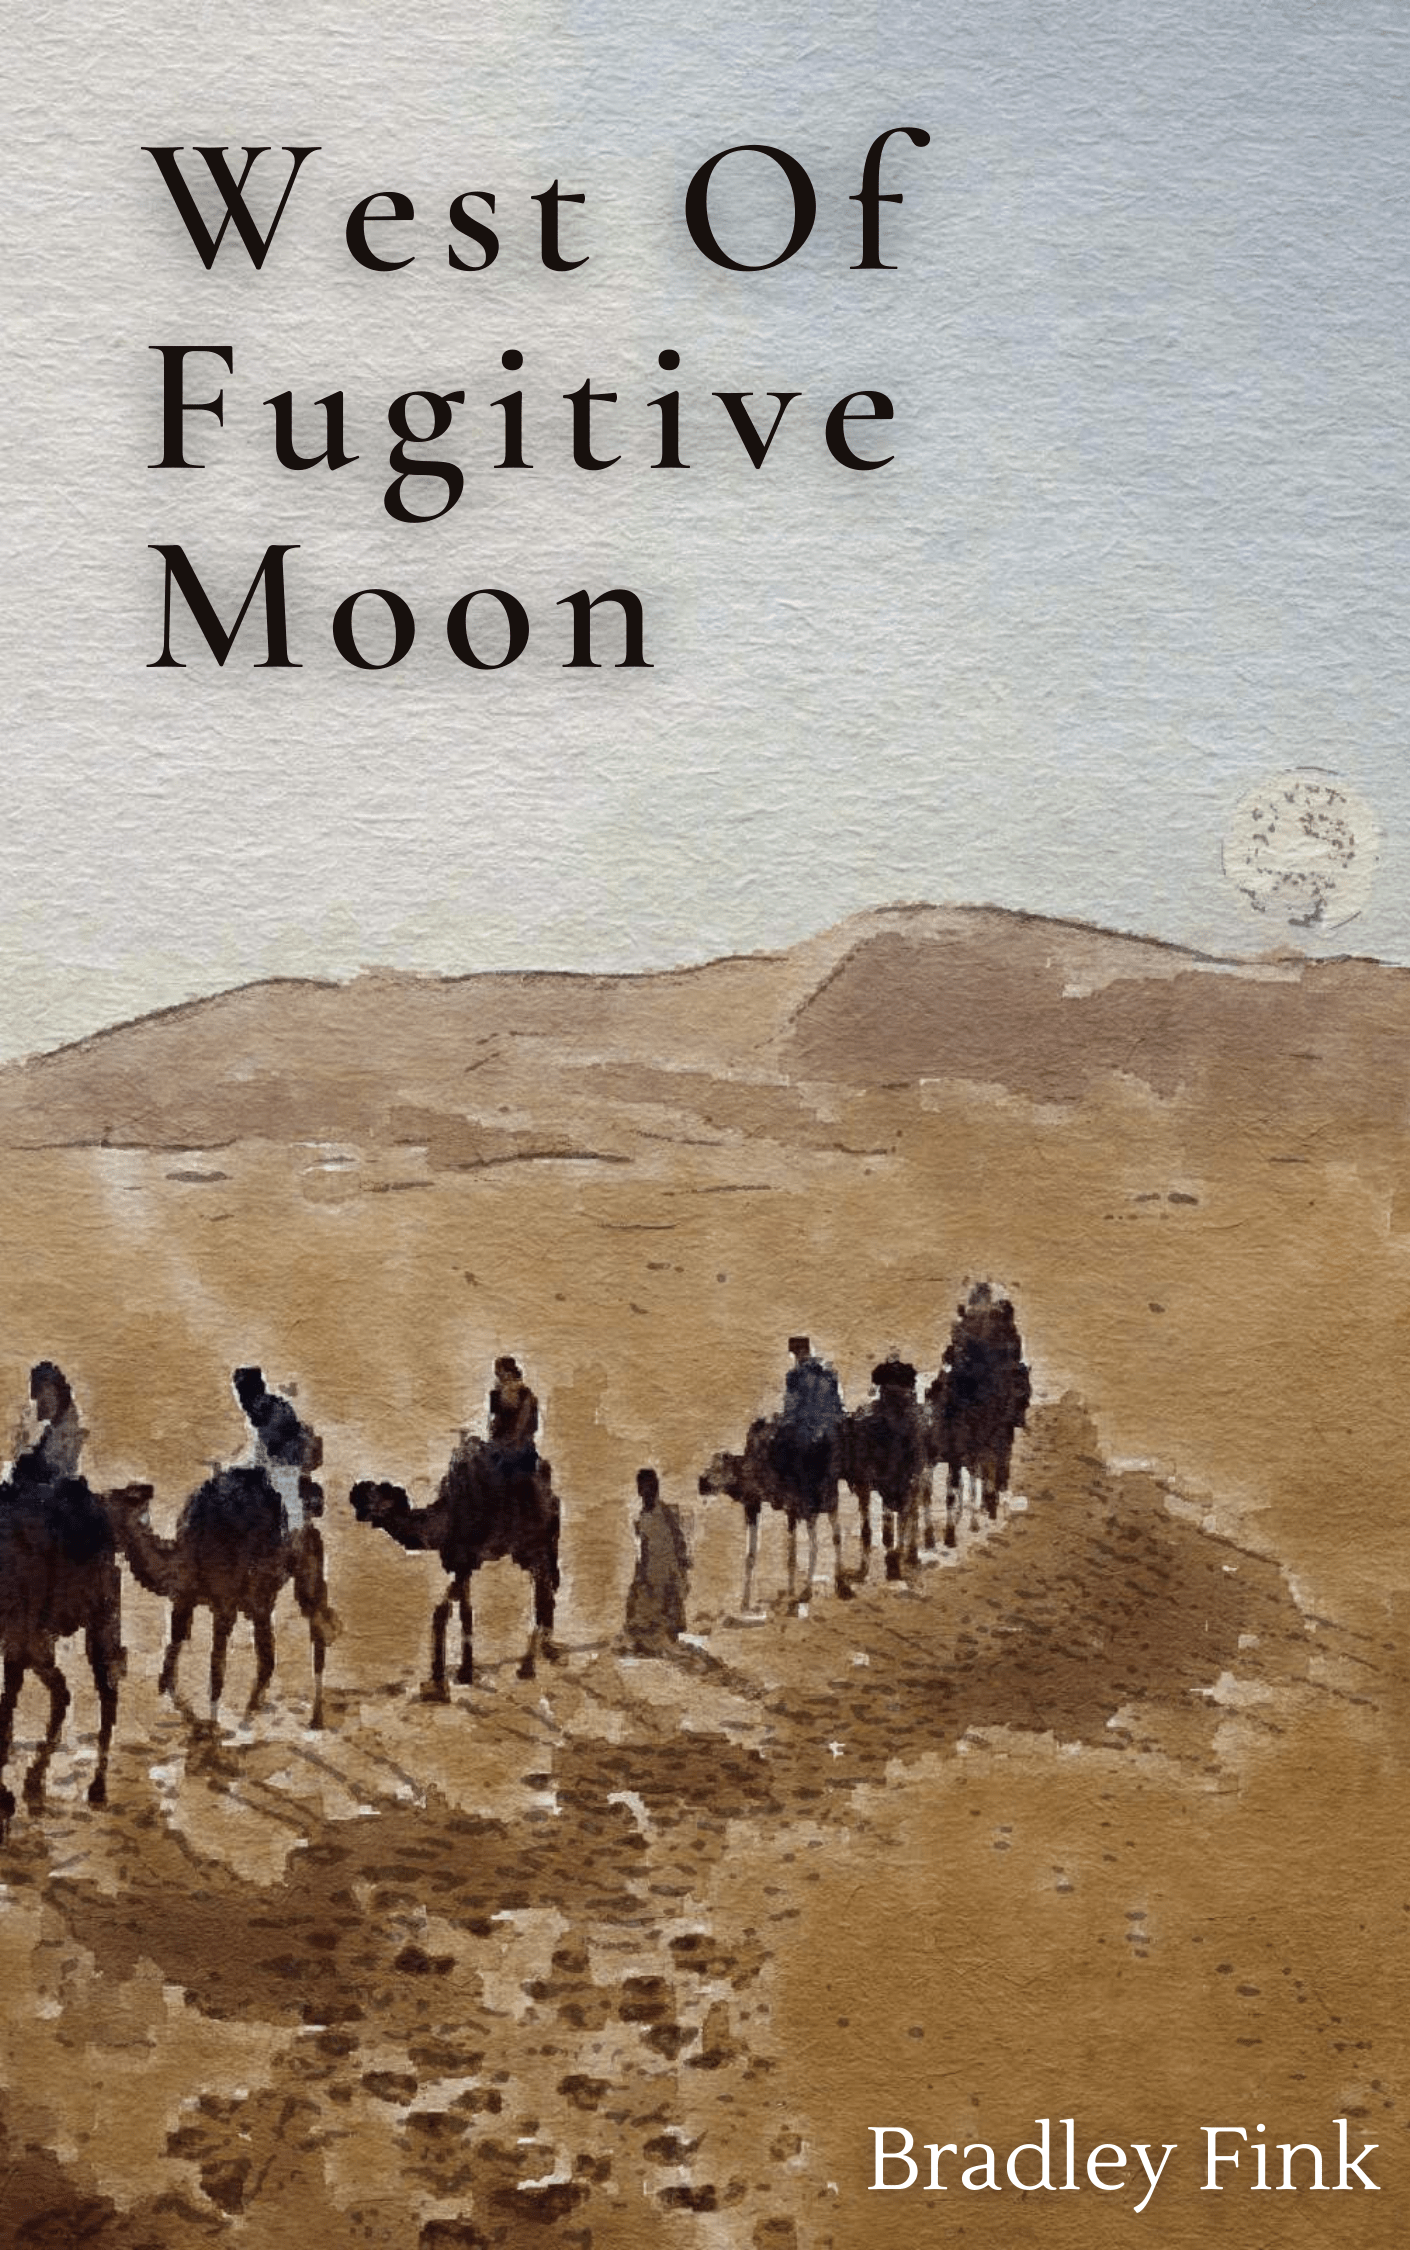 West Of Fugitive Moon novella cover